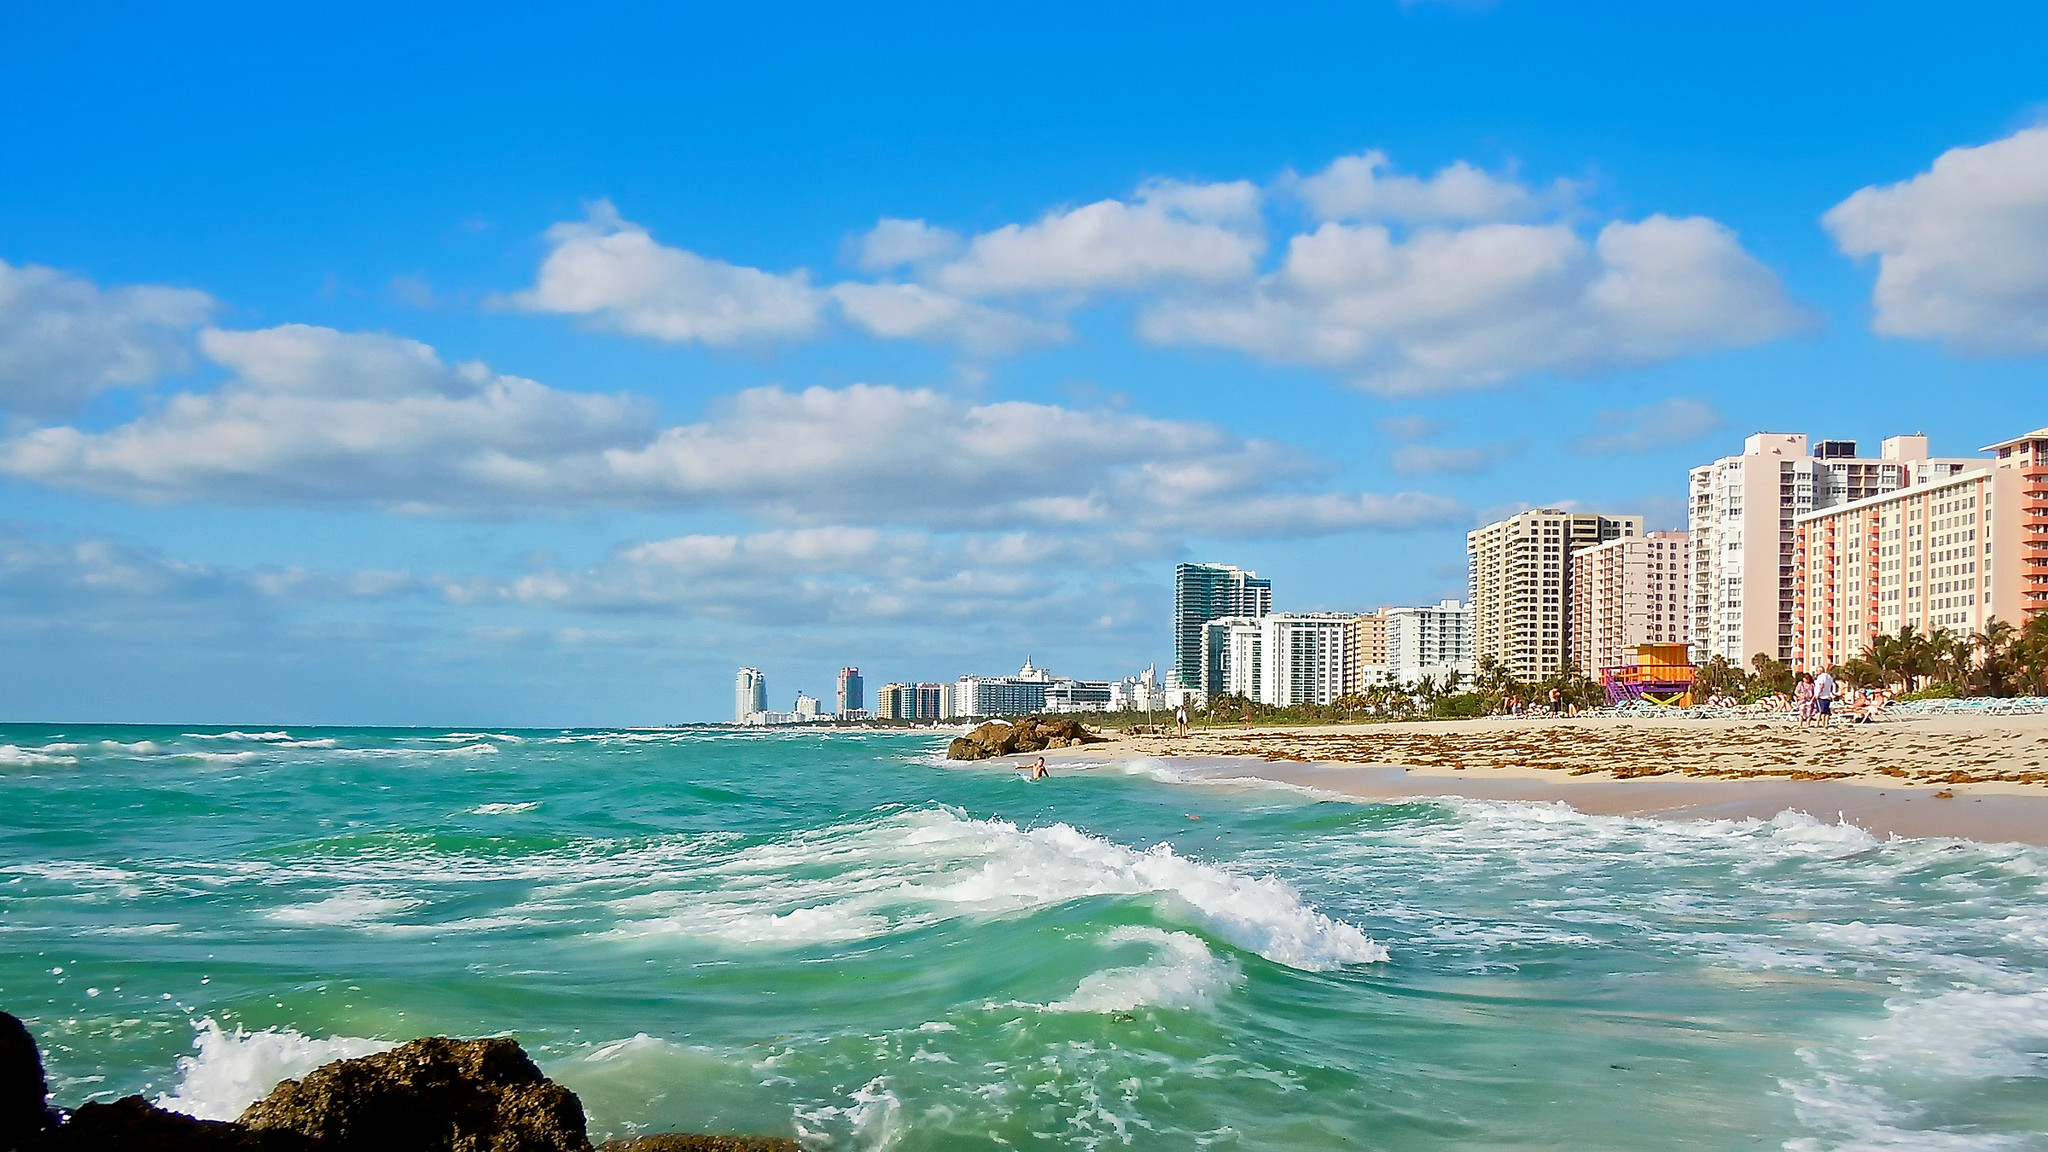 Photo Wallpaper 3d In Tampa Fl Welcome To Miami Florida Youramazingplaces Com